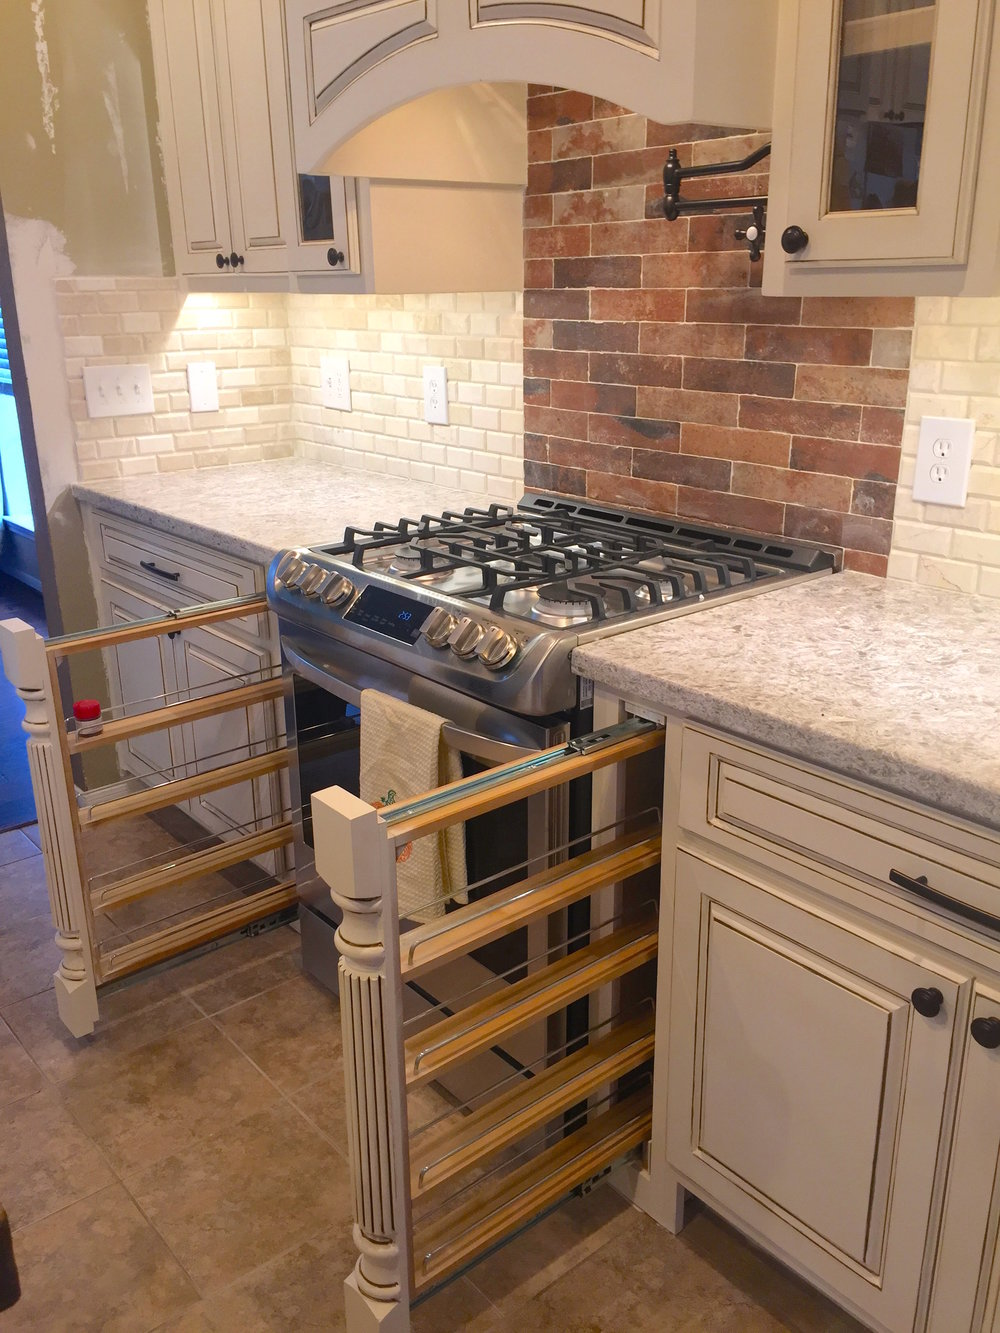 Young Family, New Kitchen - Our client in Imperial Oaks in Spring, TX wanted to remodel to old and dysfunctional kitchen to be more practical, stylish, and smart.In this kitchen we built custom cabinetry, backsplash, spice pull outs, and a hand applied glaring effect.See more below!